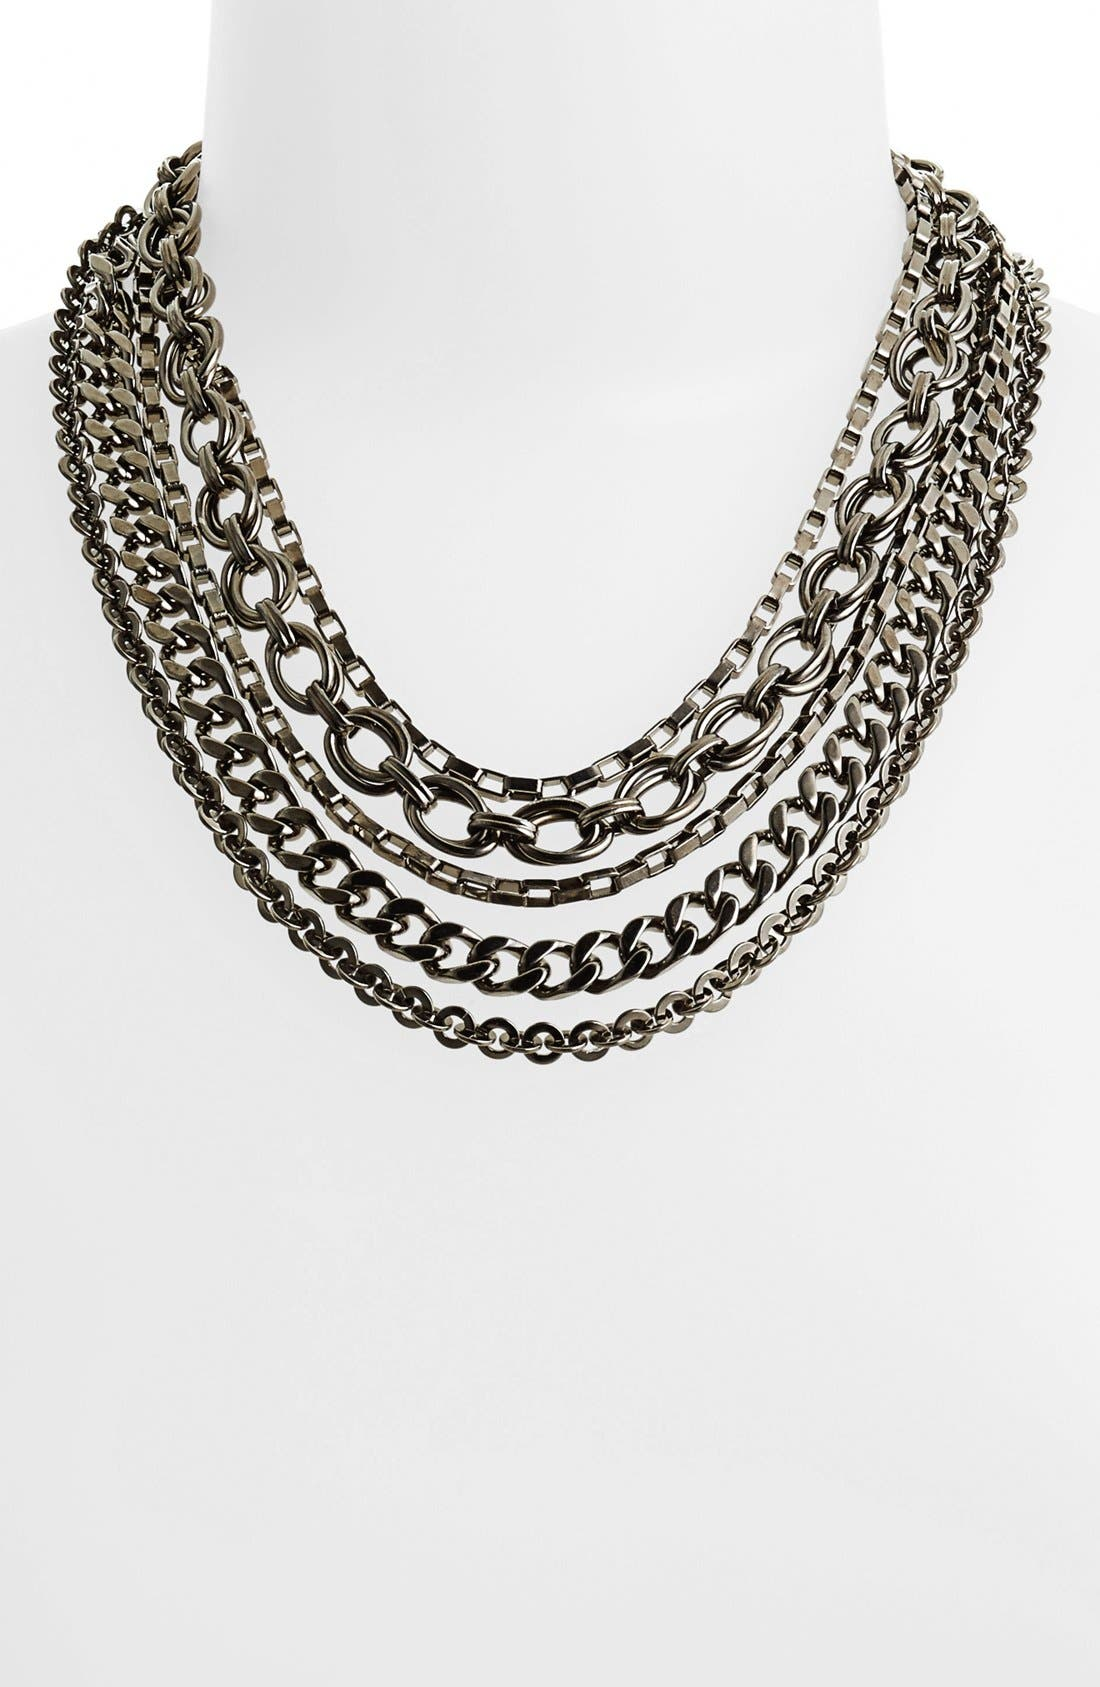 Alternate Image 1 Selected - Nordstrom 'Lady Links' Mixed Chain Necklace